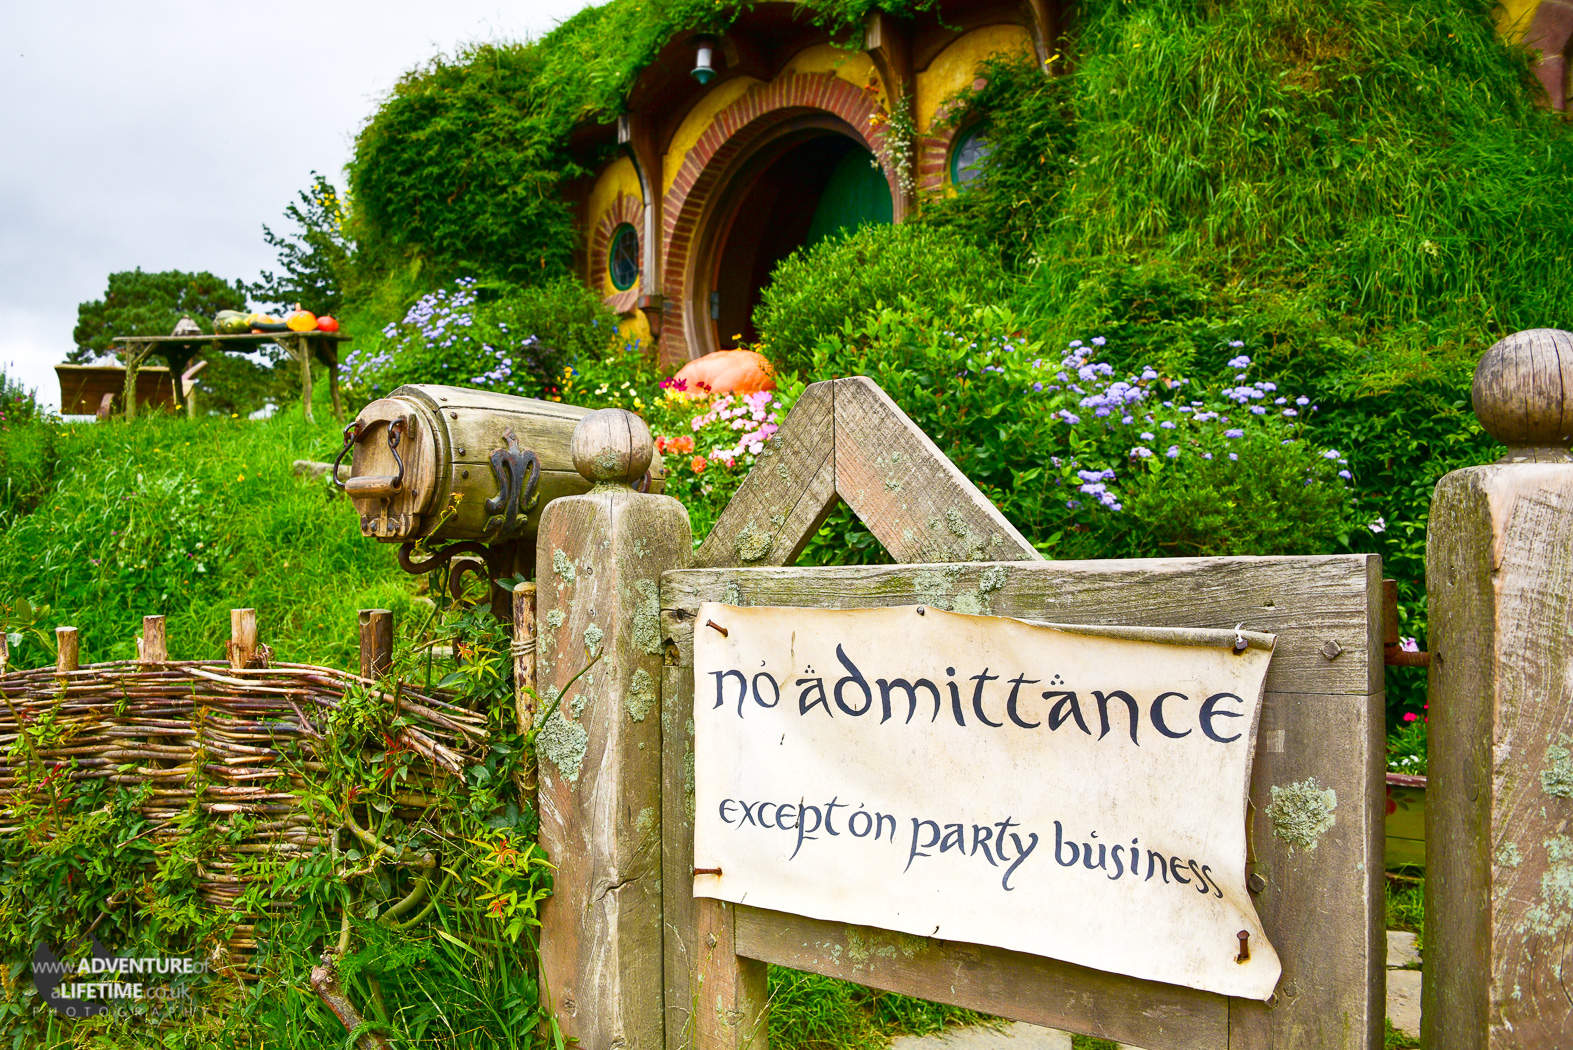 No Admittance, except on party buisness - Bilbo Baggins House